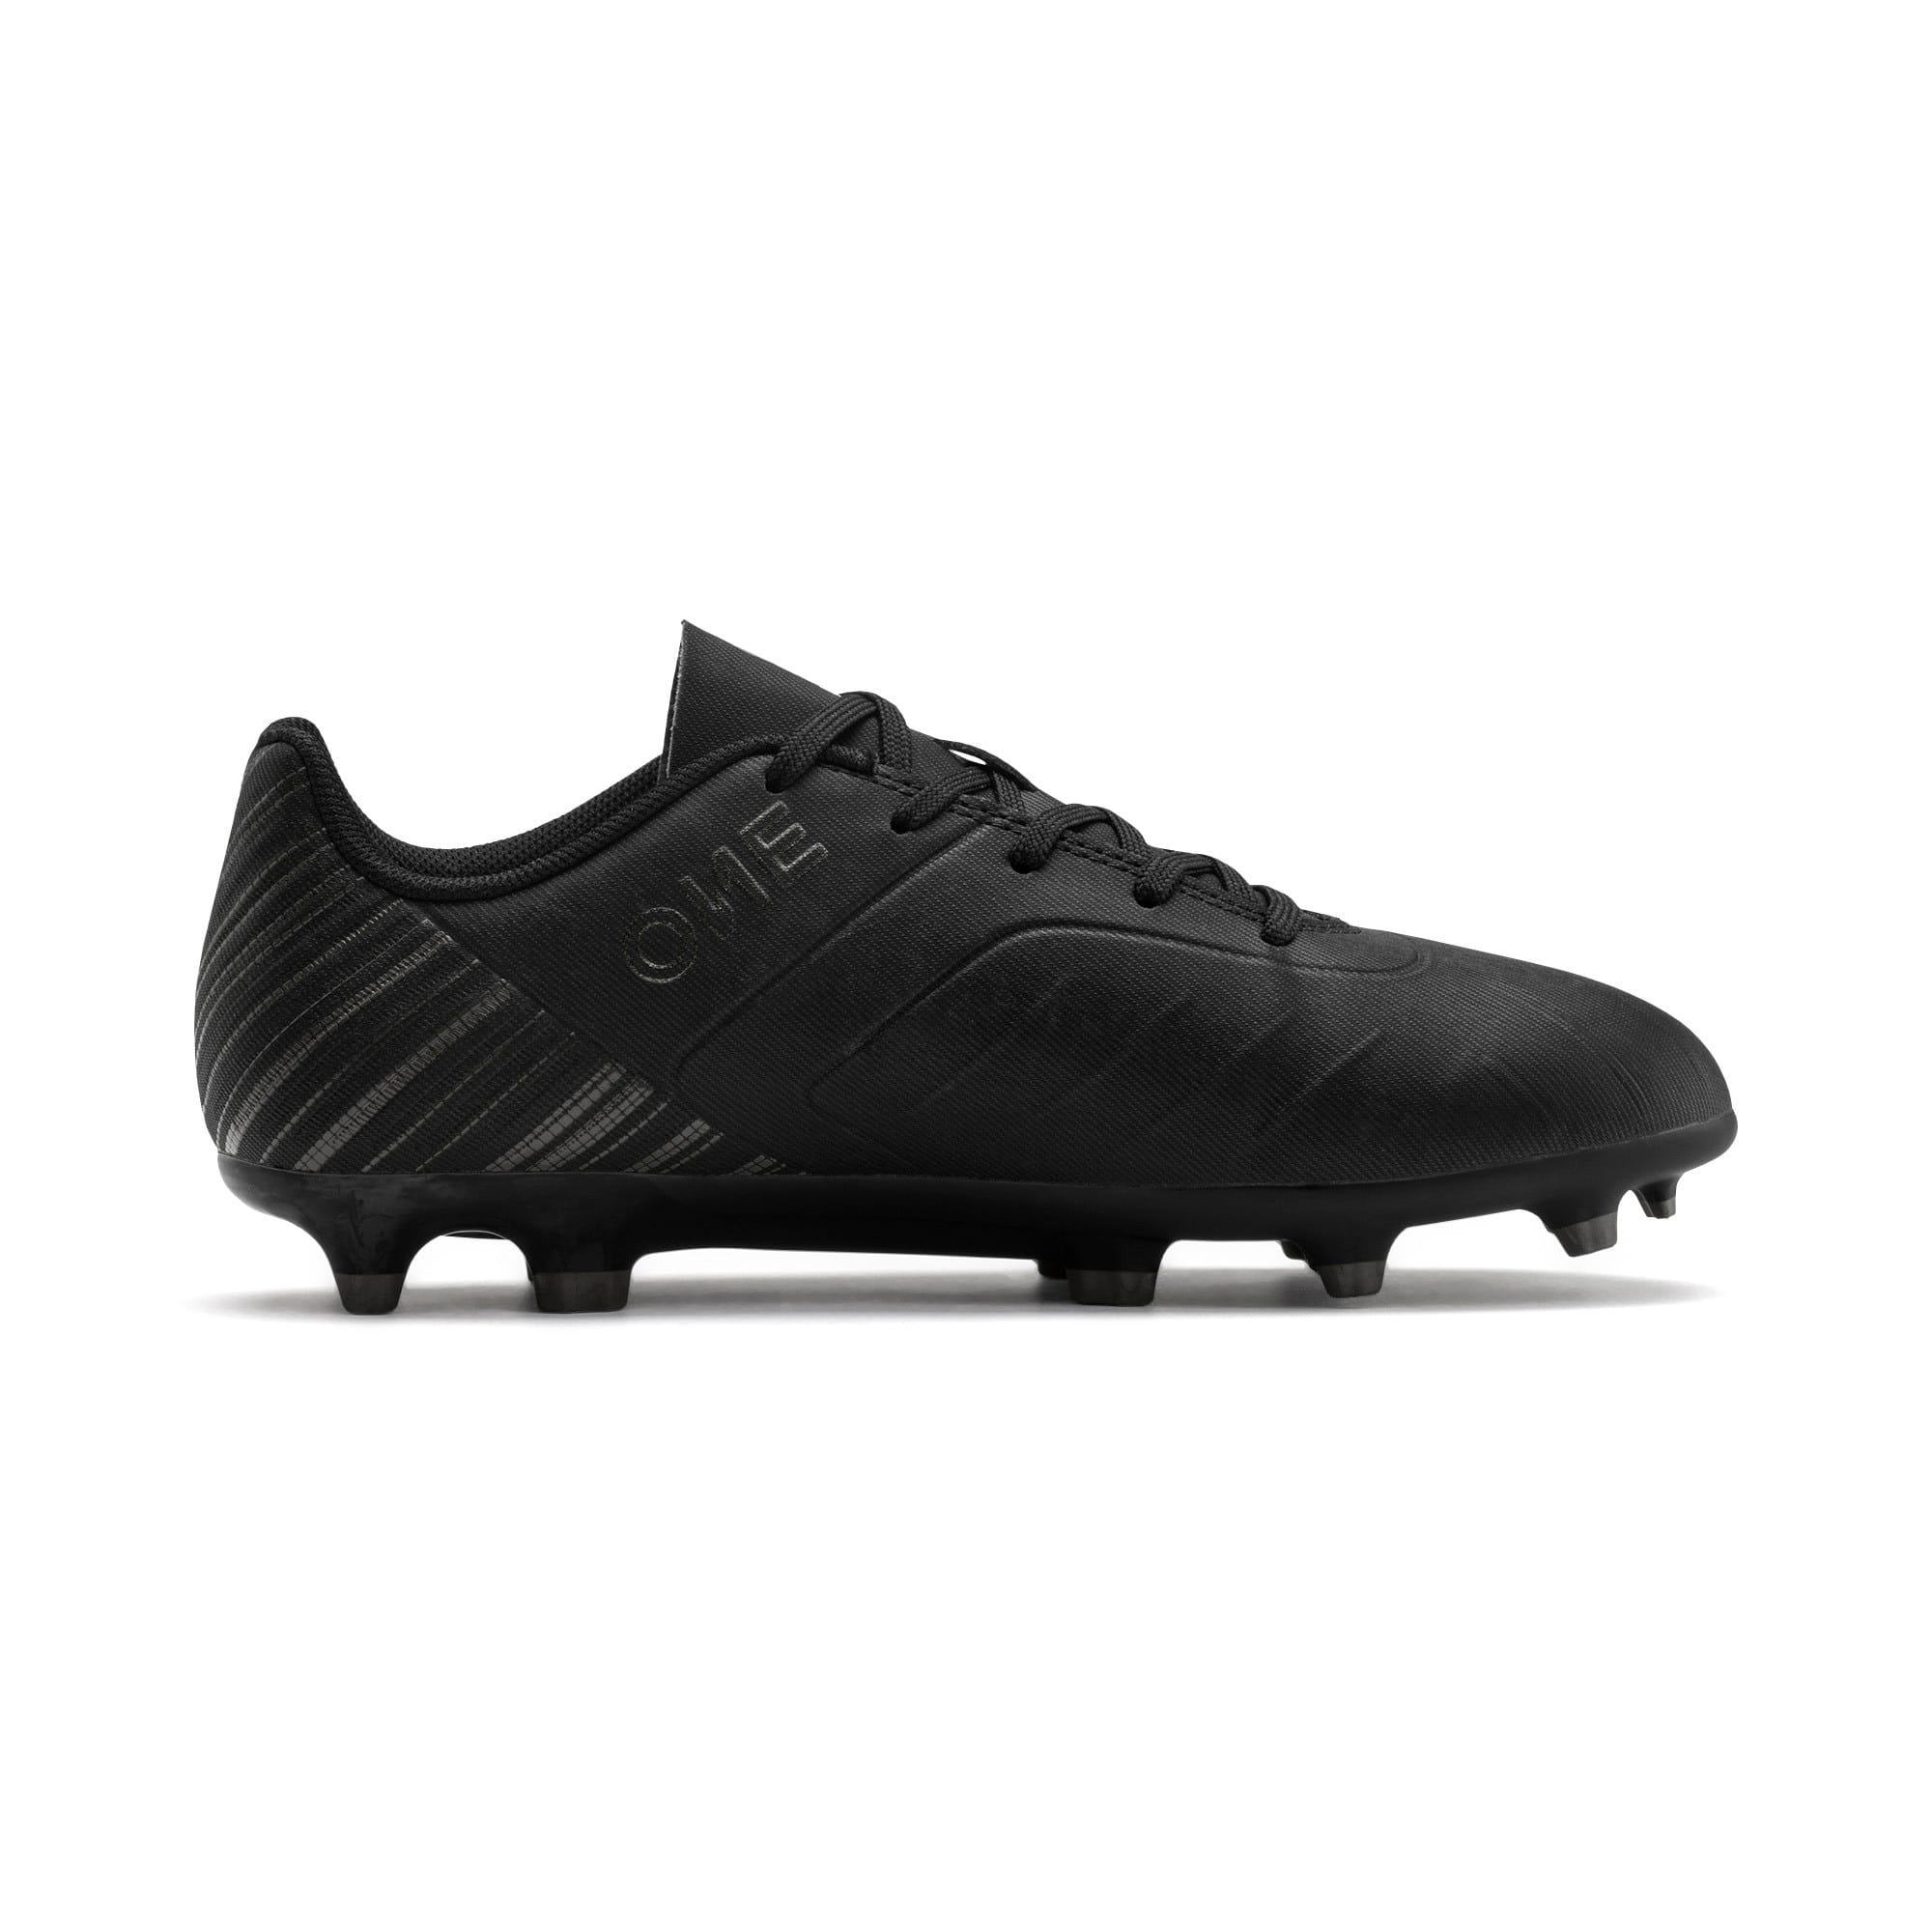 Thumbnail 5 of PUMA ONE 5.4 IT Youth Football Boots, Black-Black-Puma Aged Silver, medium